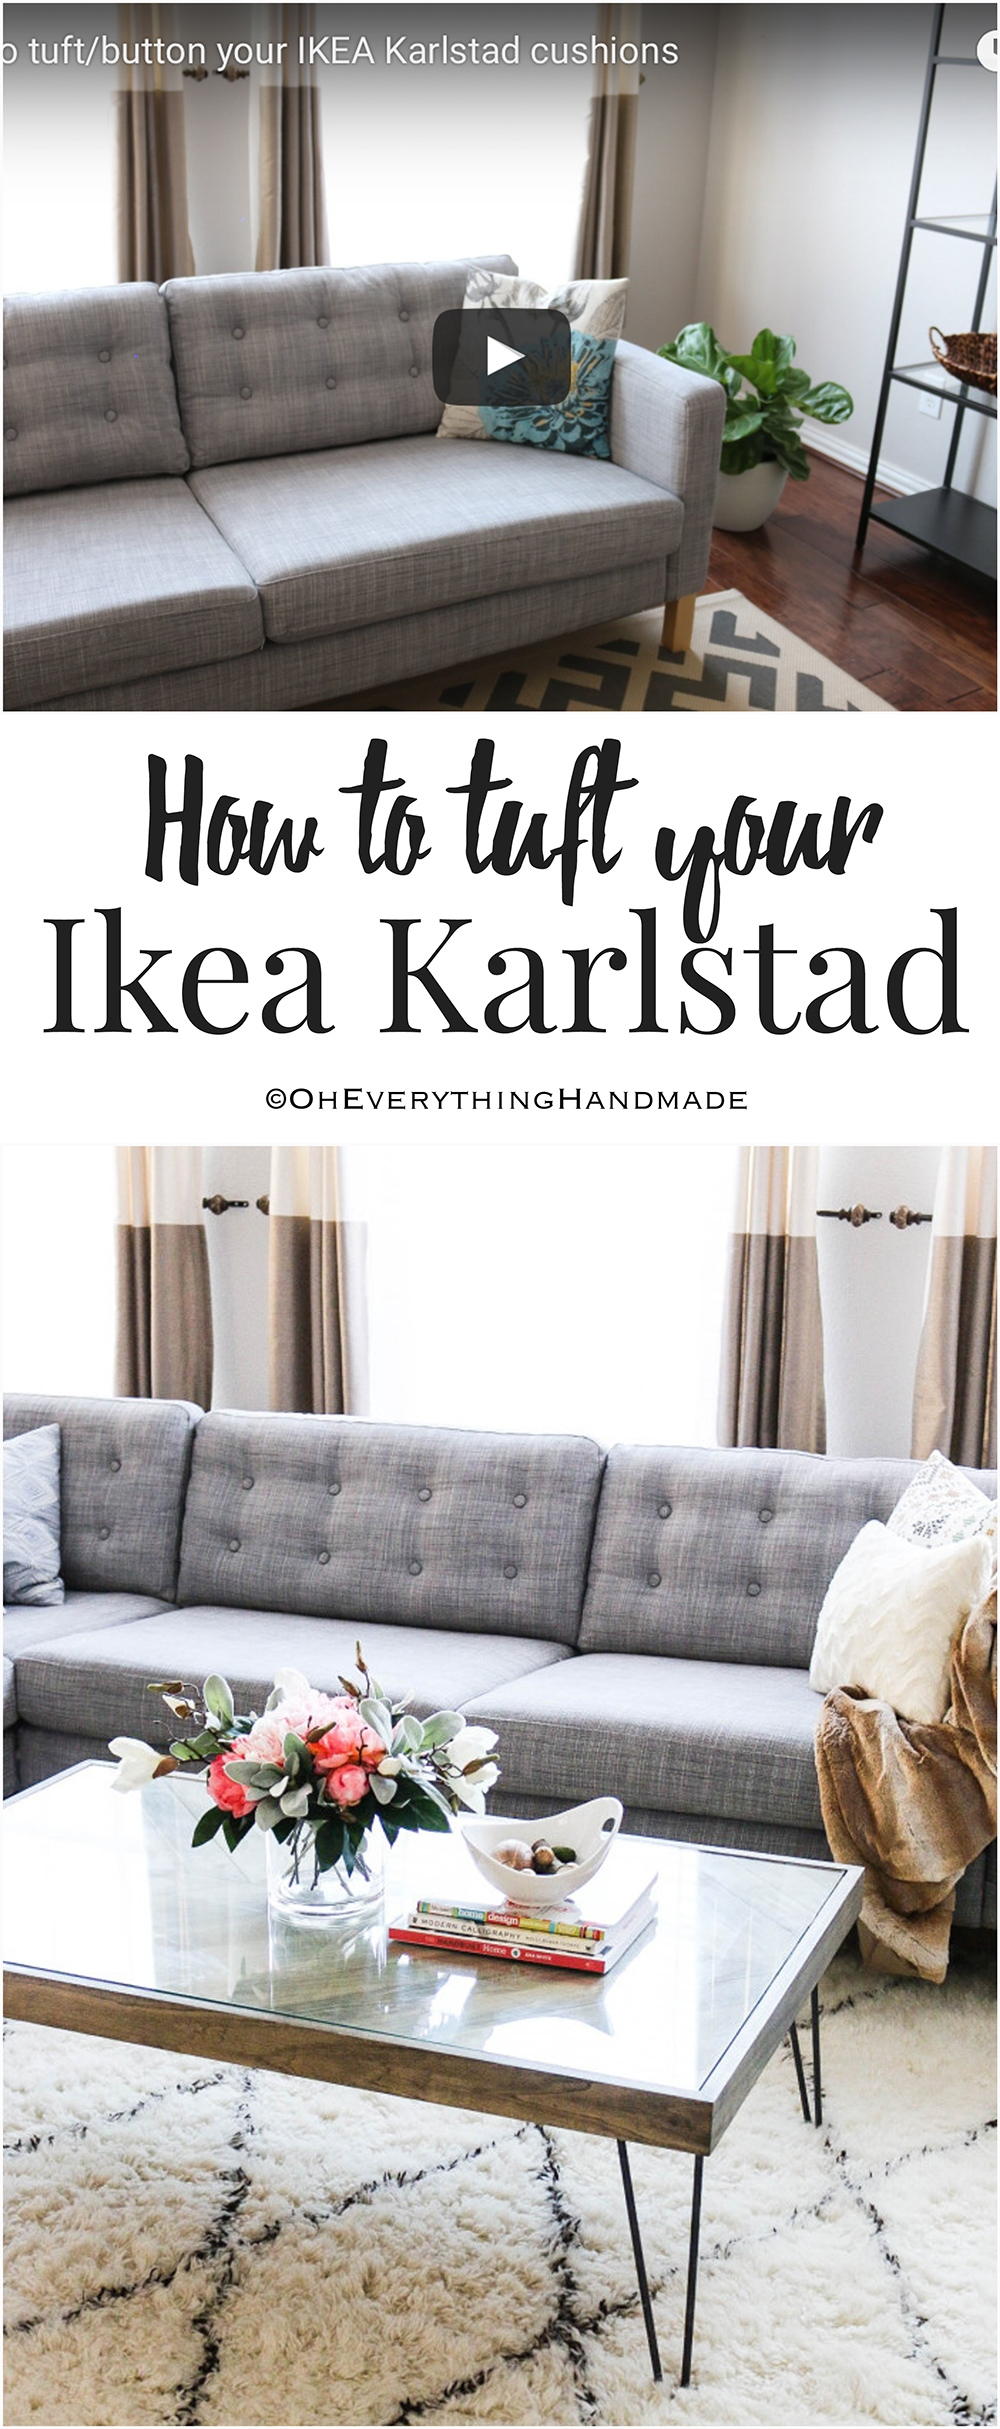 hw-to-tuft-an-ikea-karlstad-sofa-pin-it